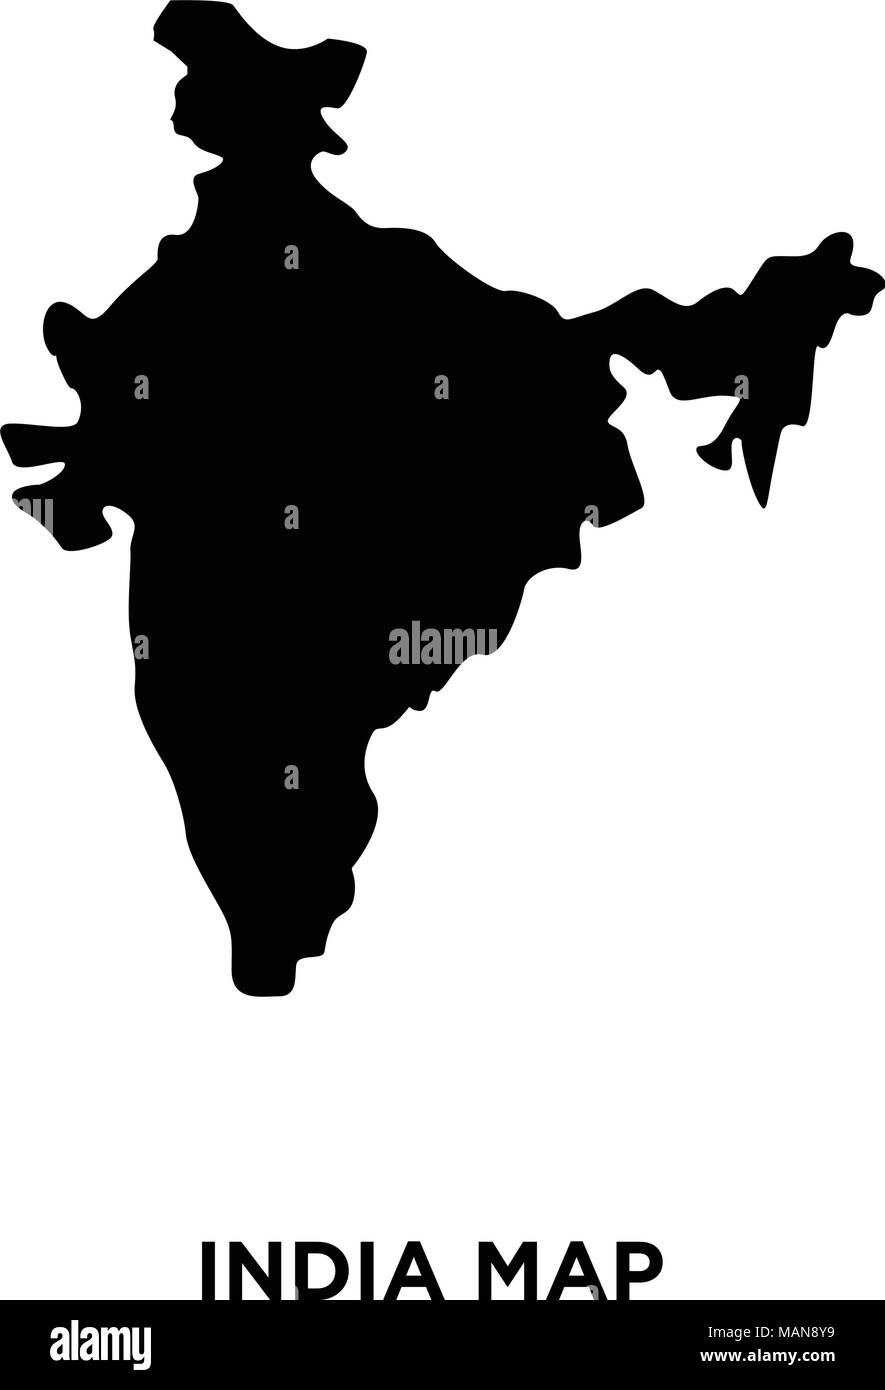 India Map Silhouette Png On White Background, Vector Illustration